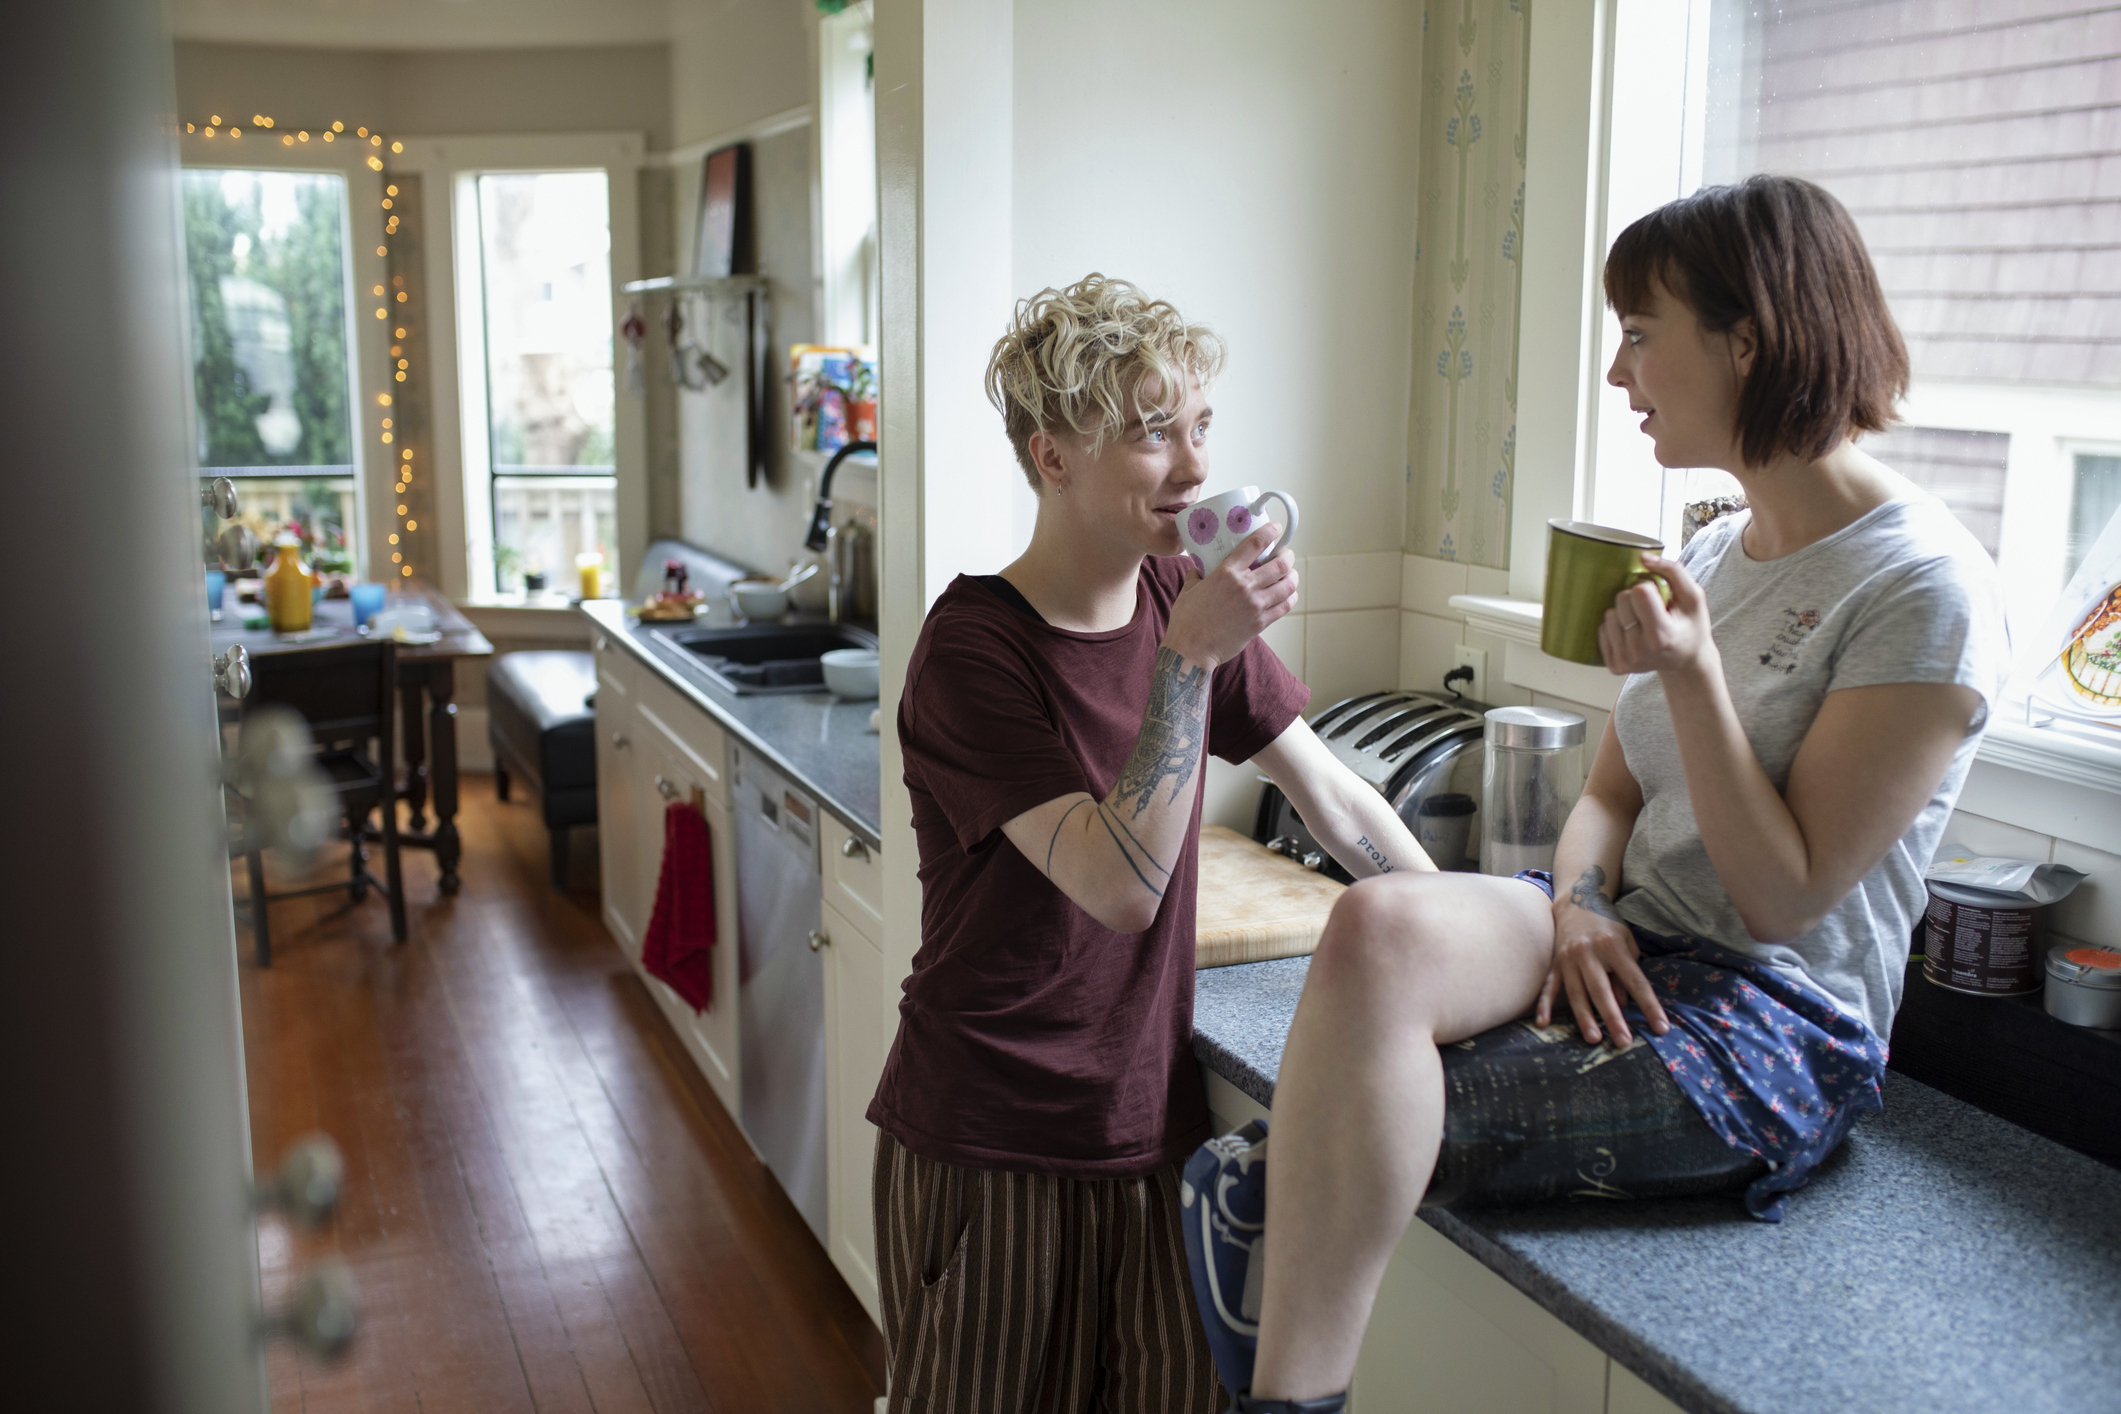 A couple drinking coffee and talking in a kitchen.